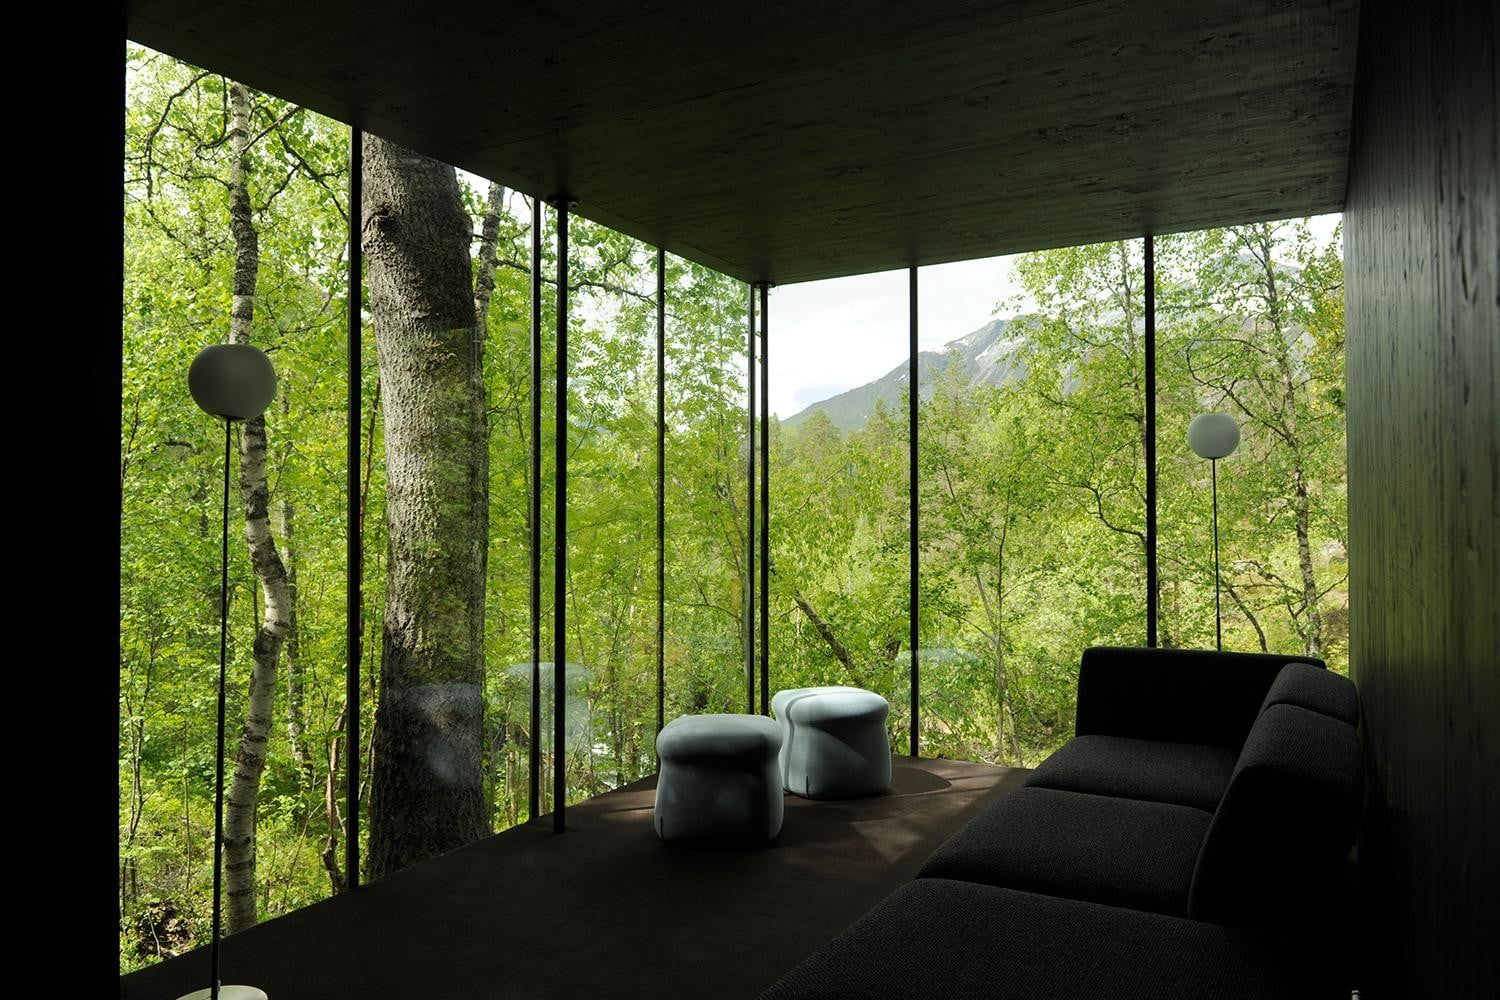 retreat from society and relax in these idyllic cabins around the world juvet landscape hotel 12